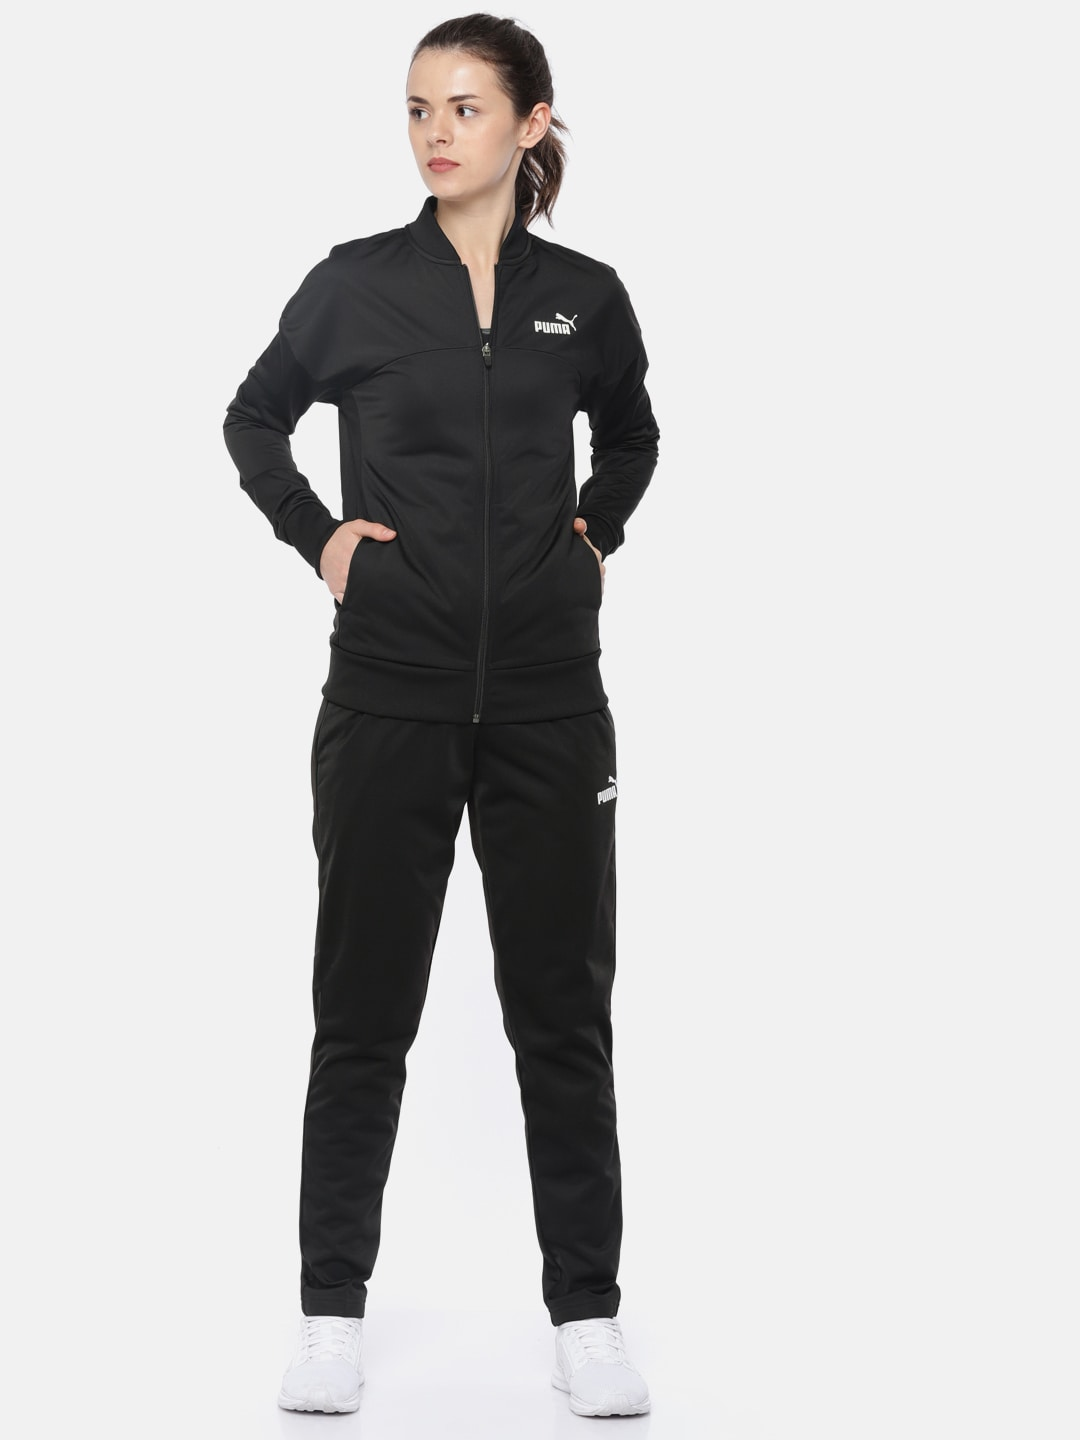 Puma Tracksuits - Buy Puma Tracksuits Online in India 5dc8cd104